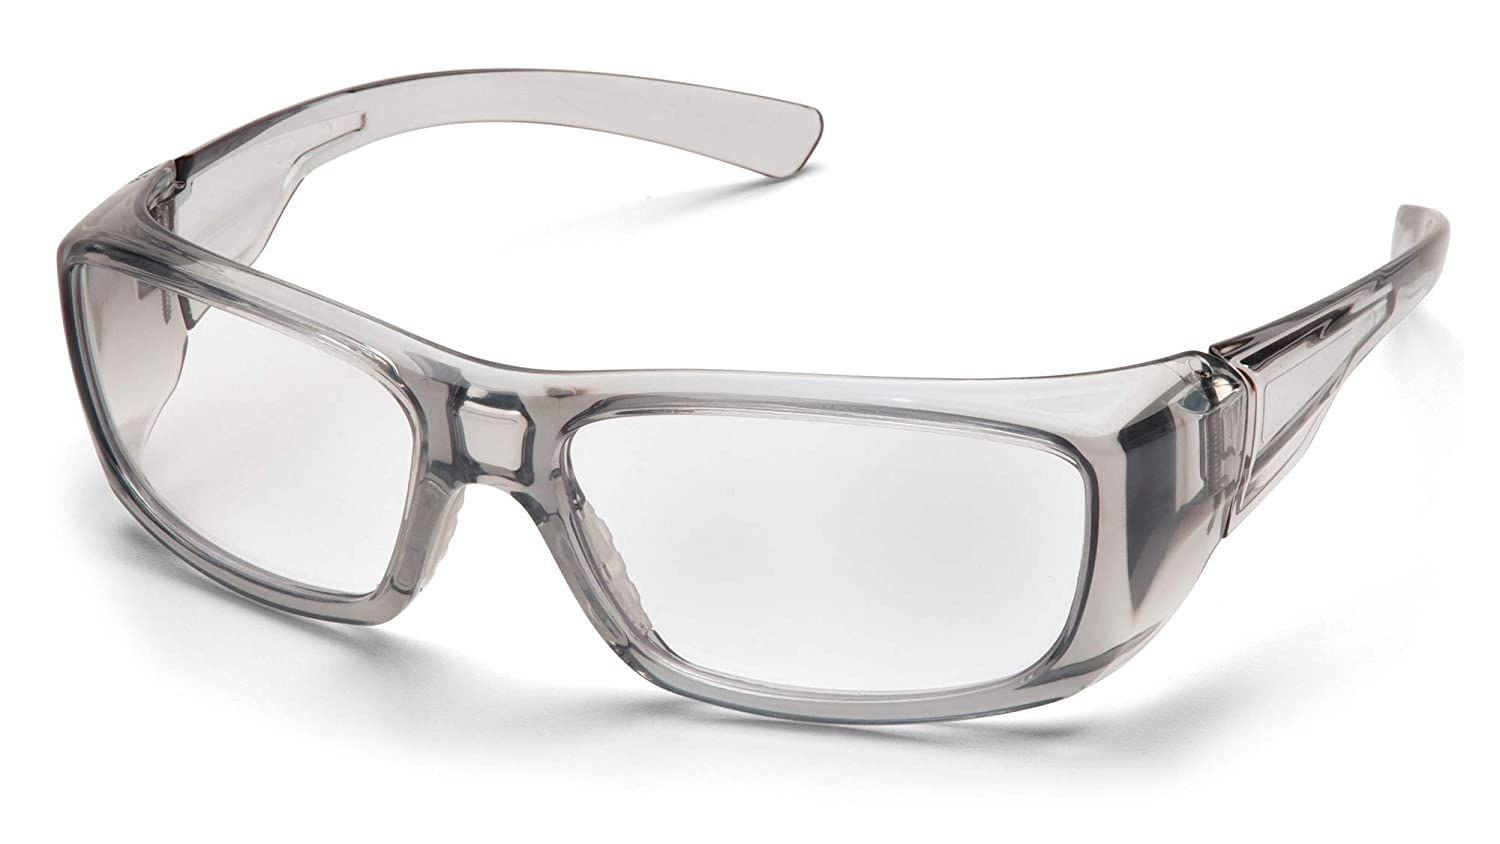 2.0/Lens by Pyramex Safety Pyramex Safety sg7910d20/Ressort Grey Frame With Clear